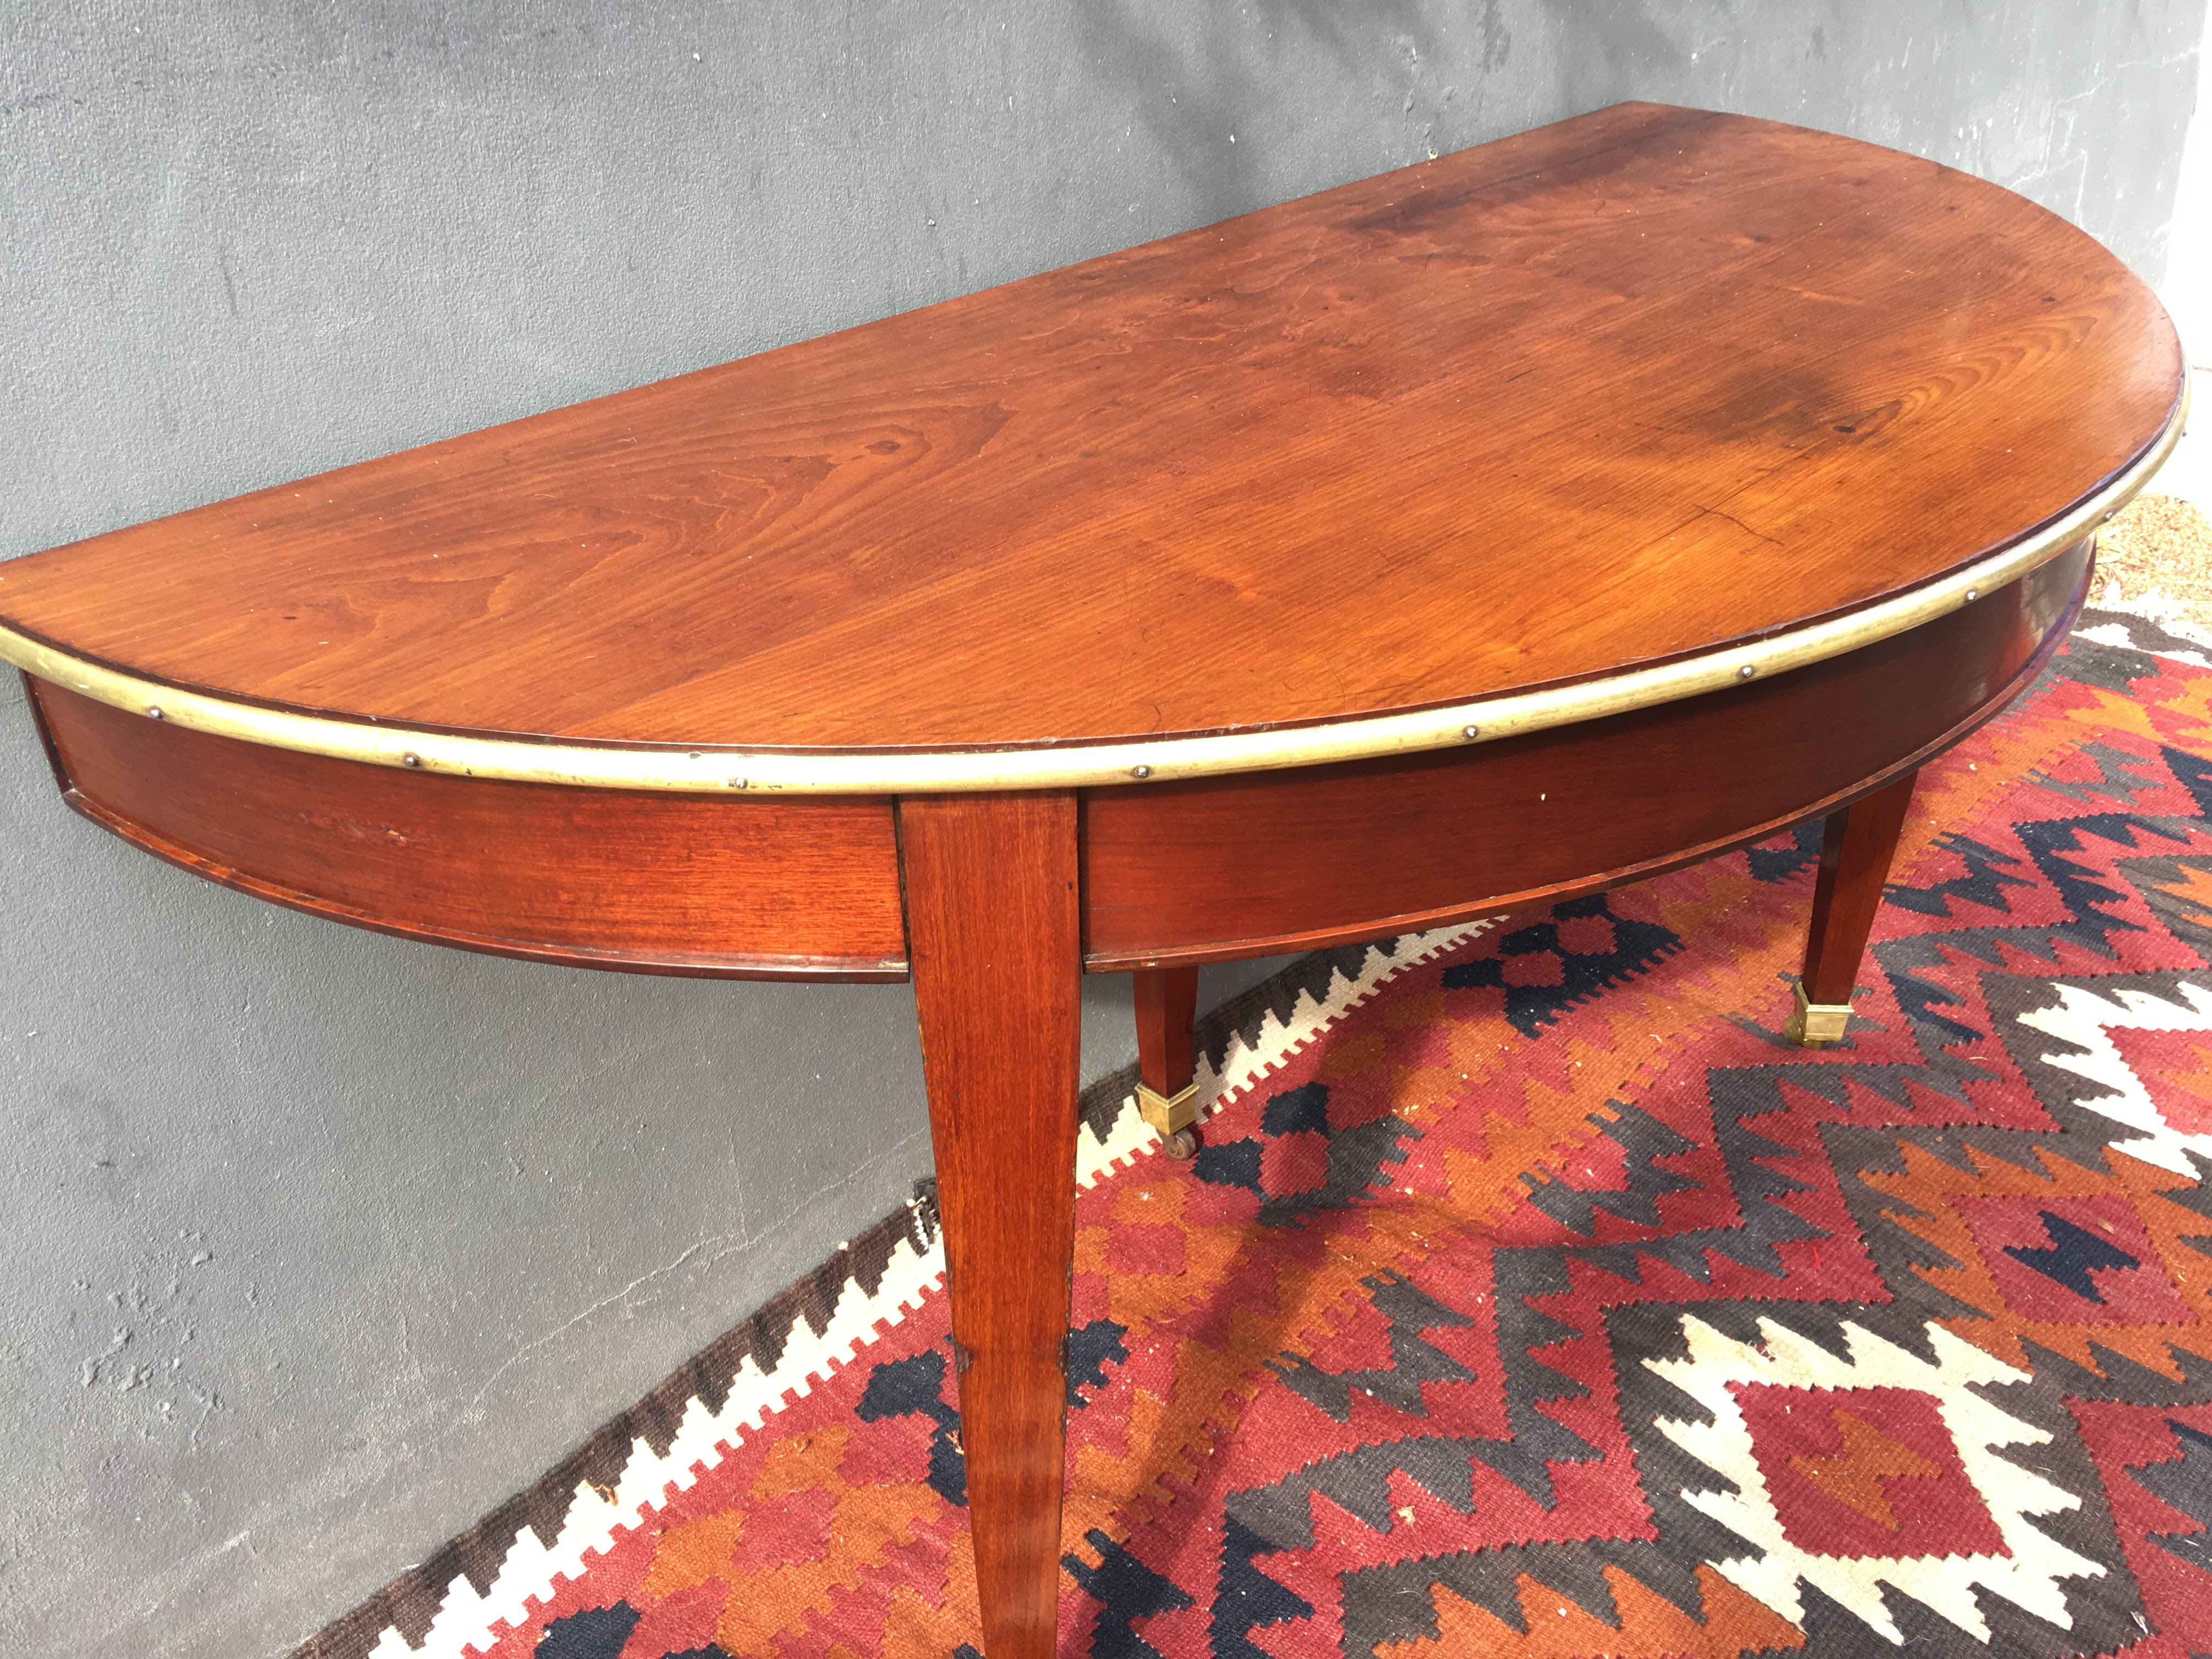 Ideal Pair of French Demi Lune Tables Lovely pair of mid century Empire side tables with warm faded mahogany and brass bound tops on tapered legs capped by brass